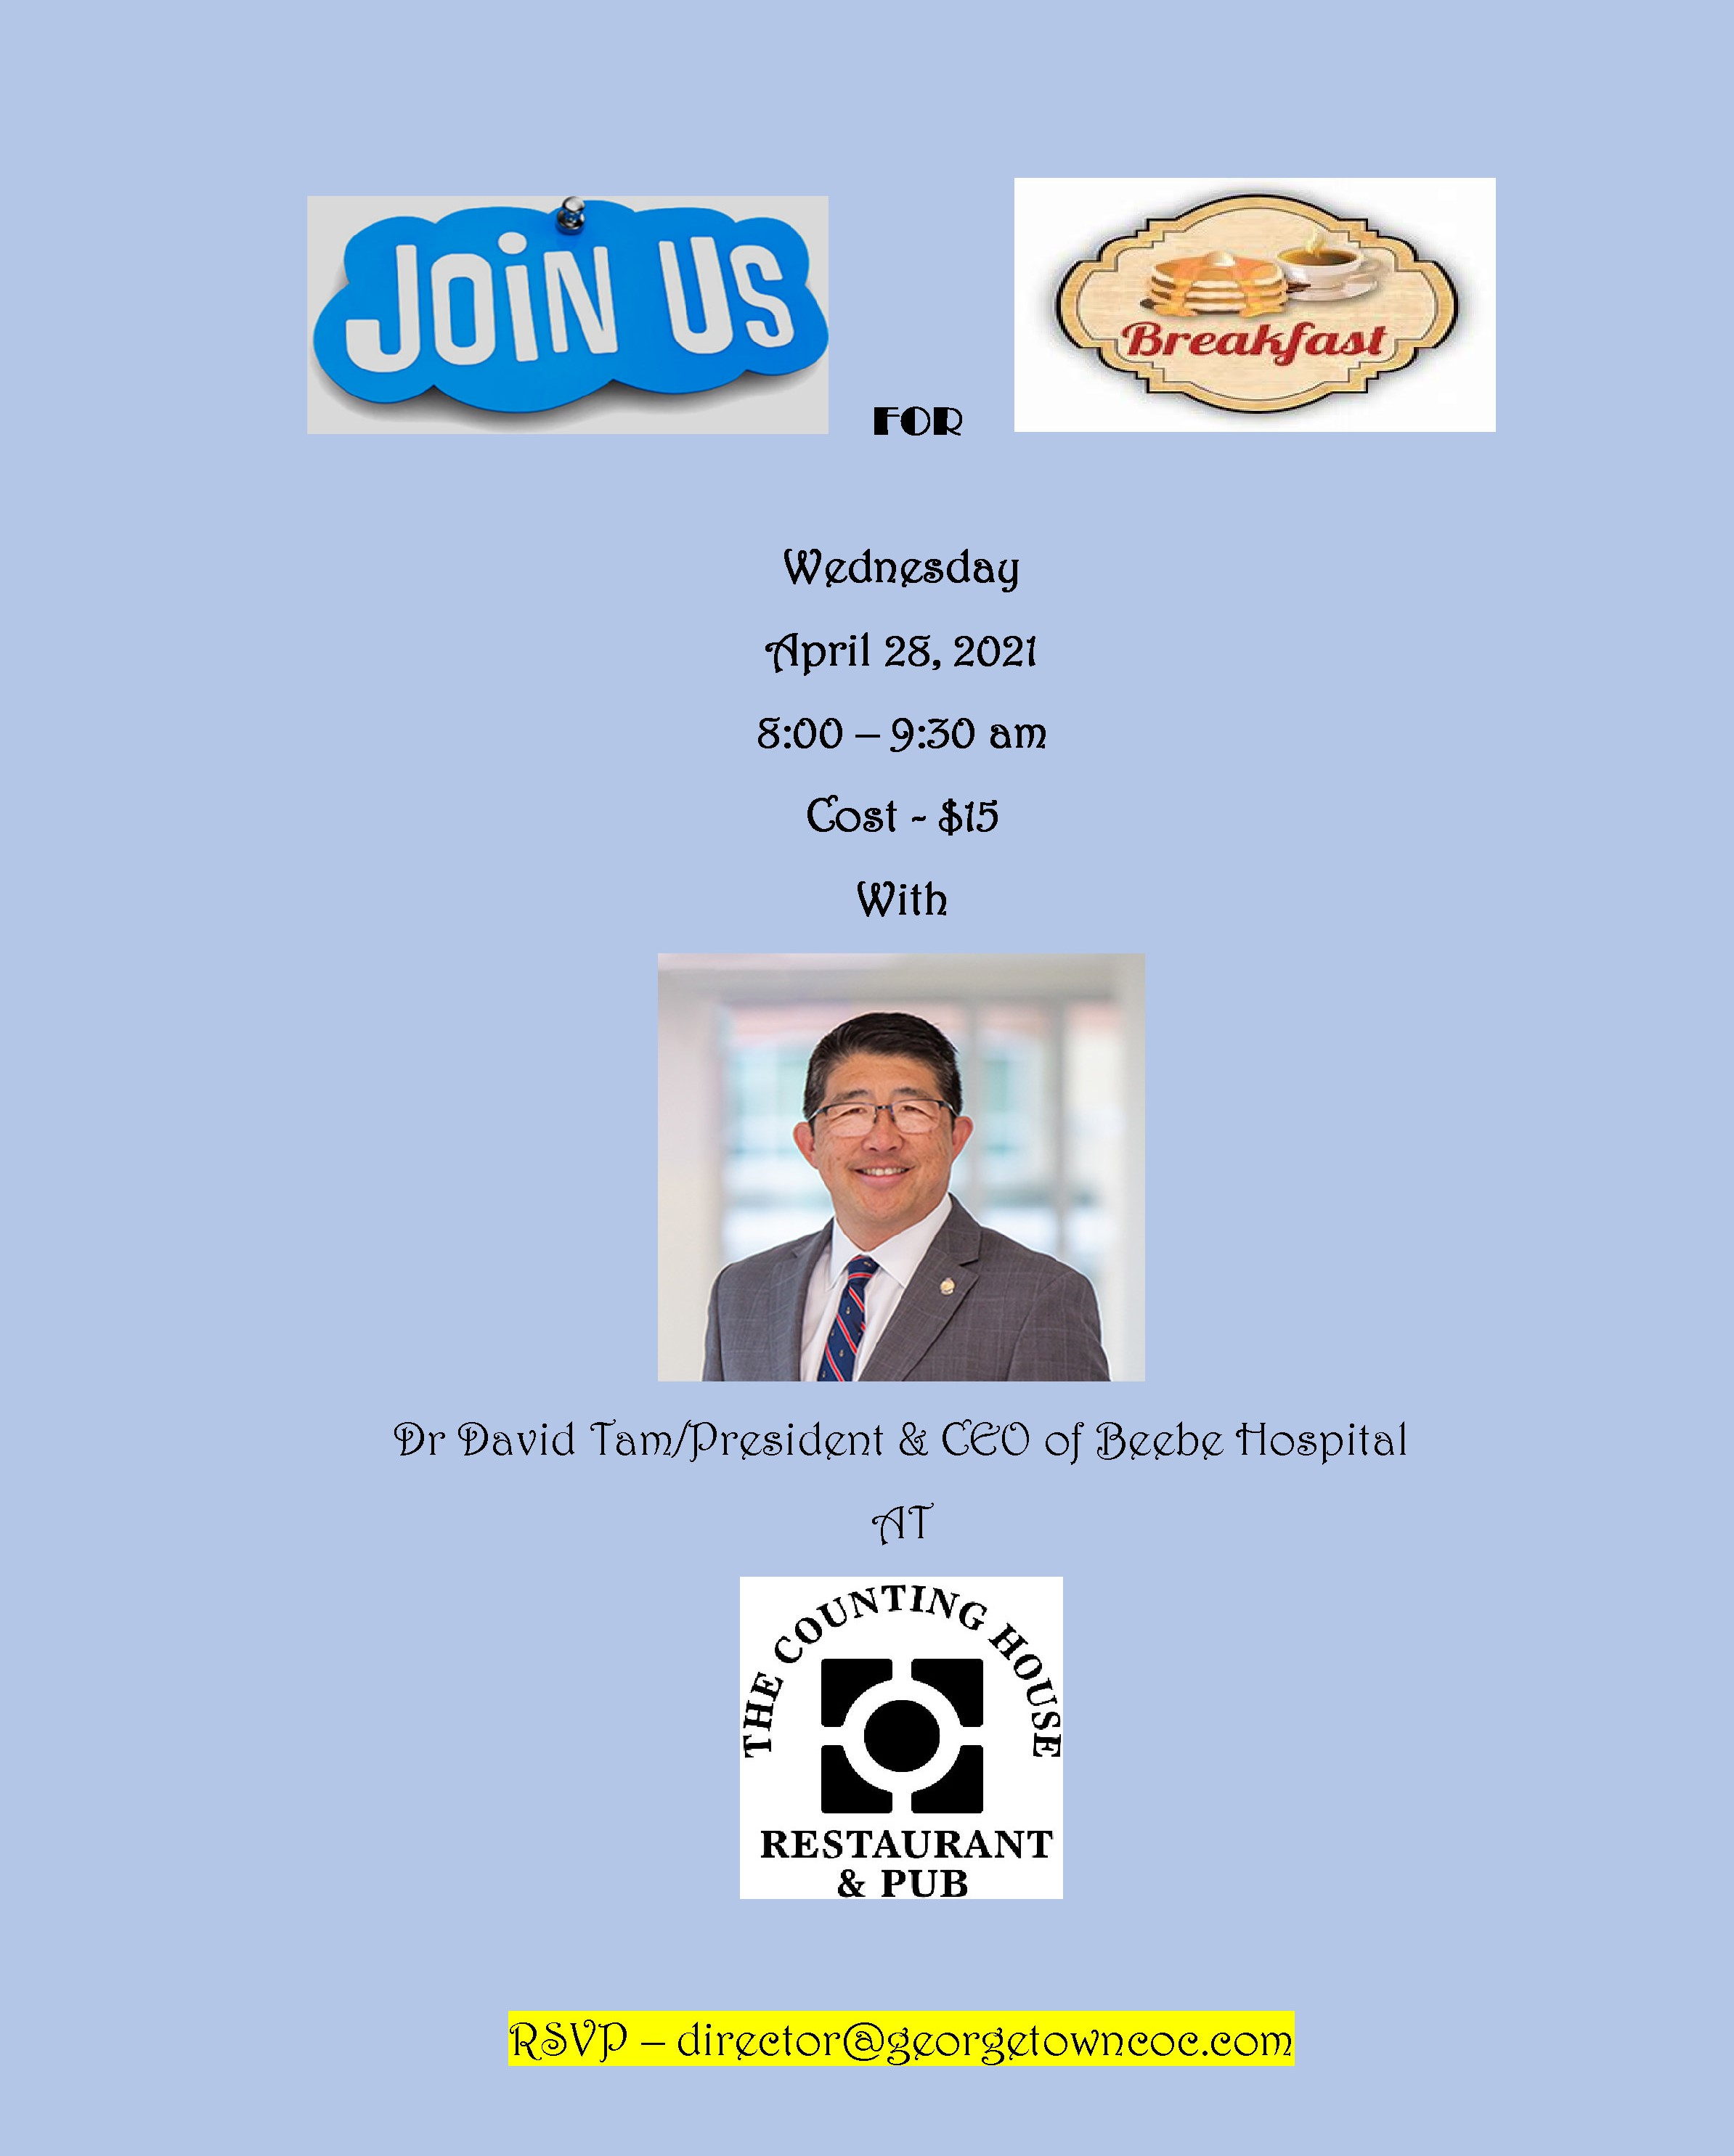 Breakfast with Dr. David Tam